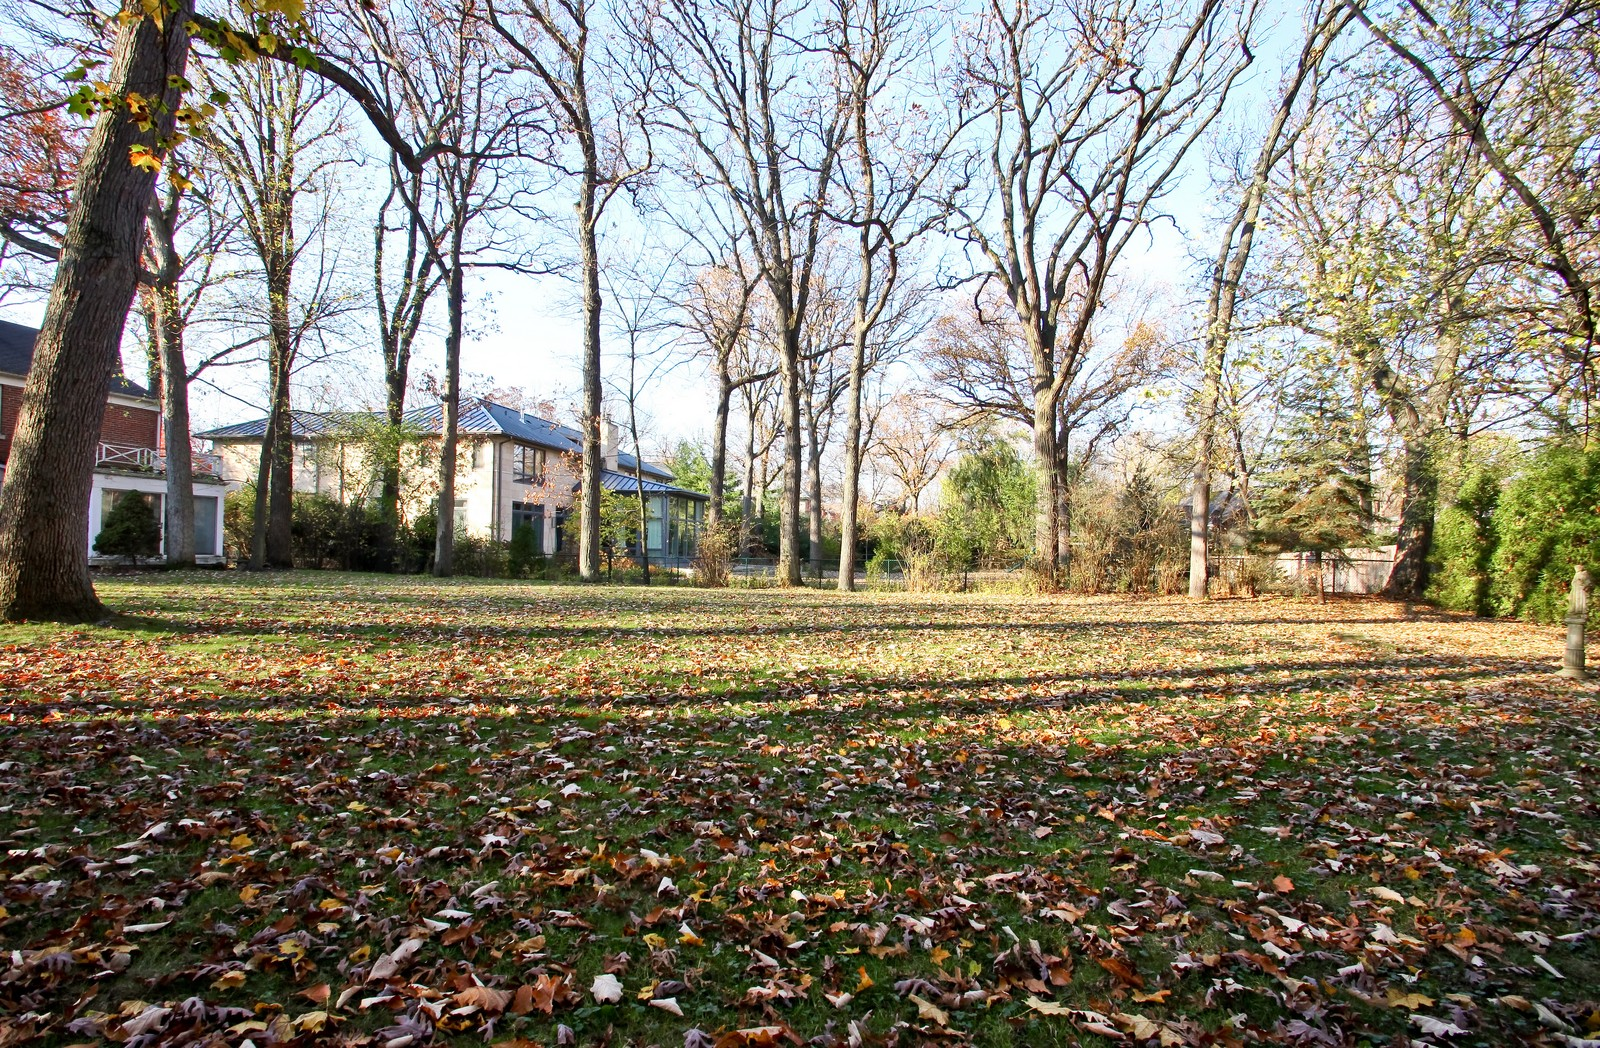 Real Estate Photography - 231 Woodlawn Ave, Winnetka, IL, 60093 - 231 Woodlawn Ave, Glencoe yard view from East to W